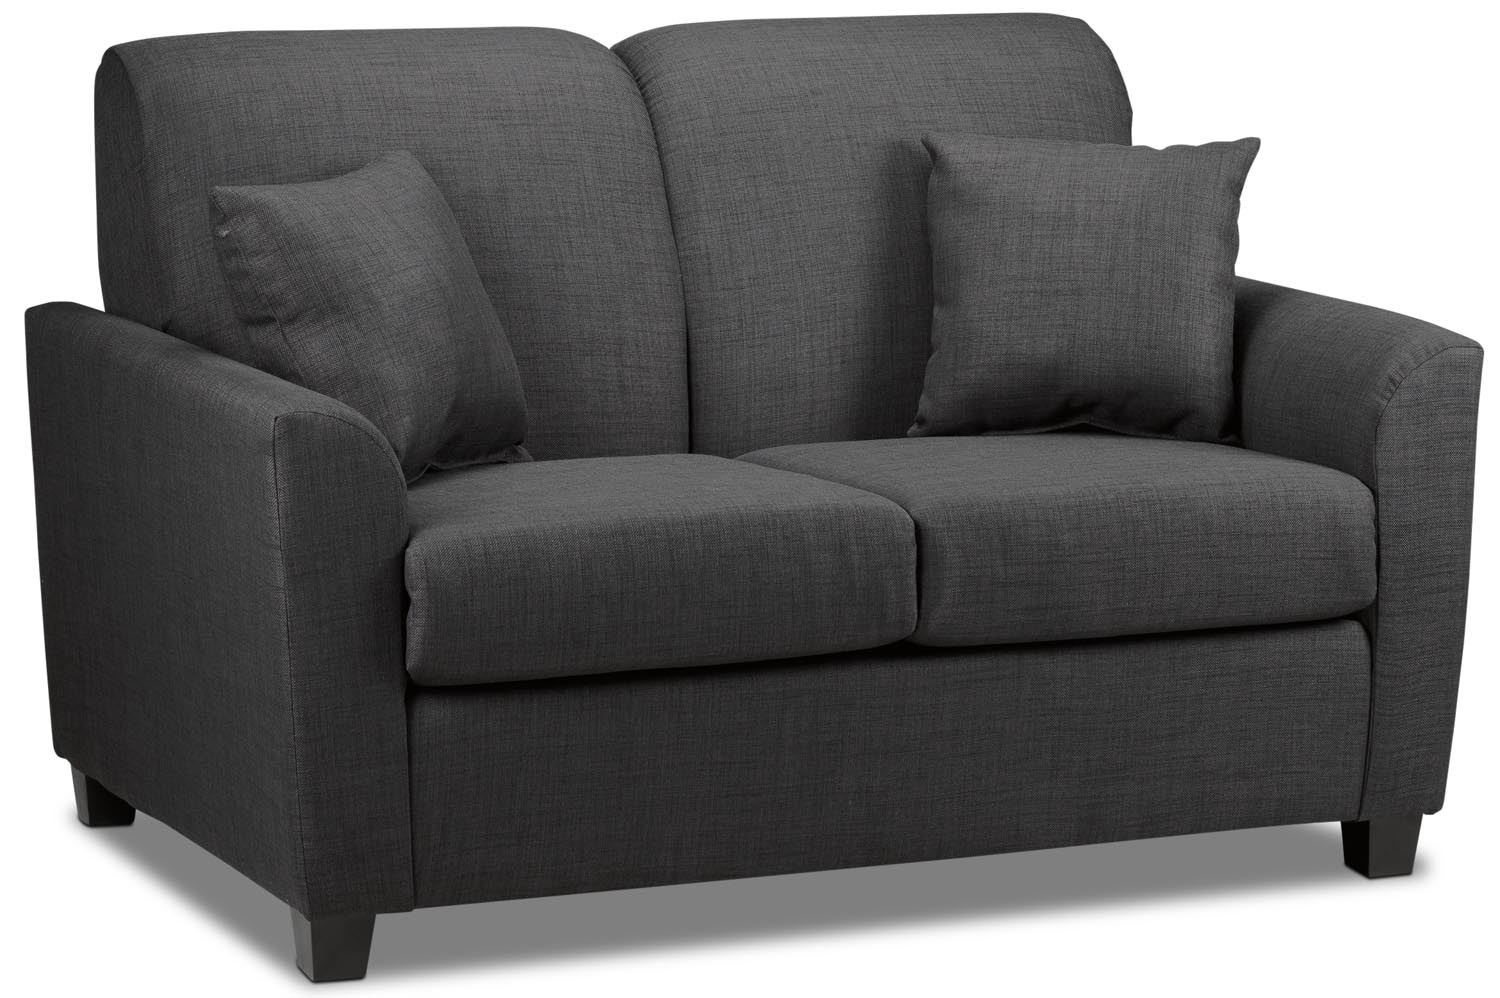 Cheap Sofa Beds Canada Sofa Menzilperde Net